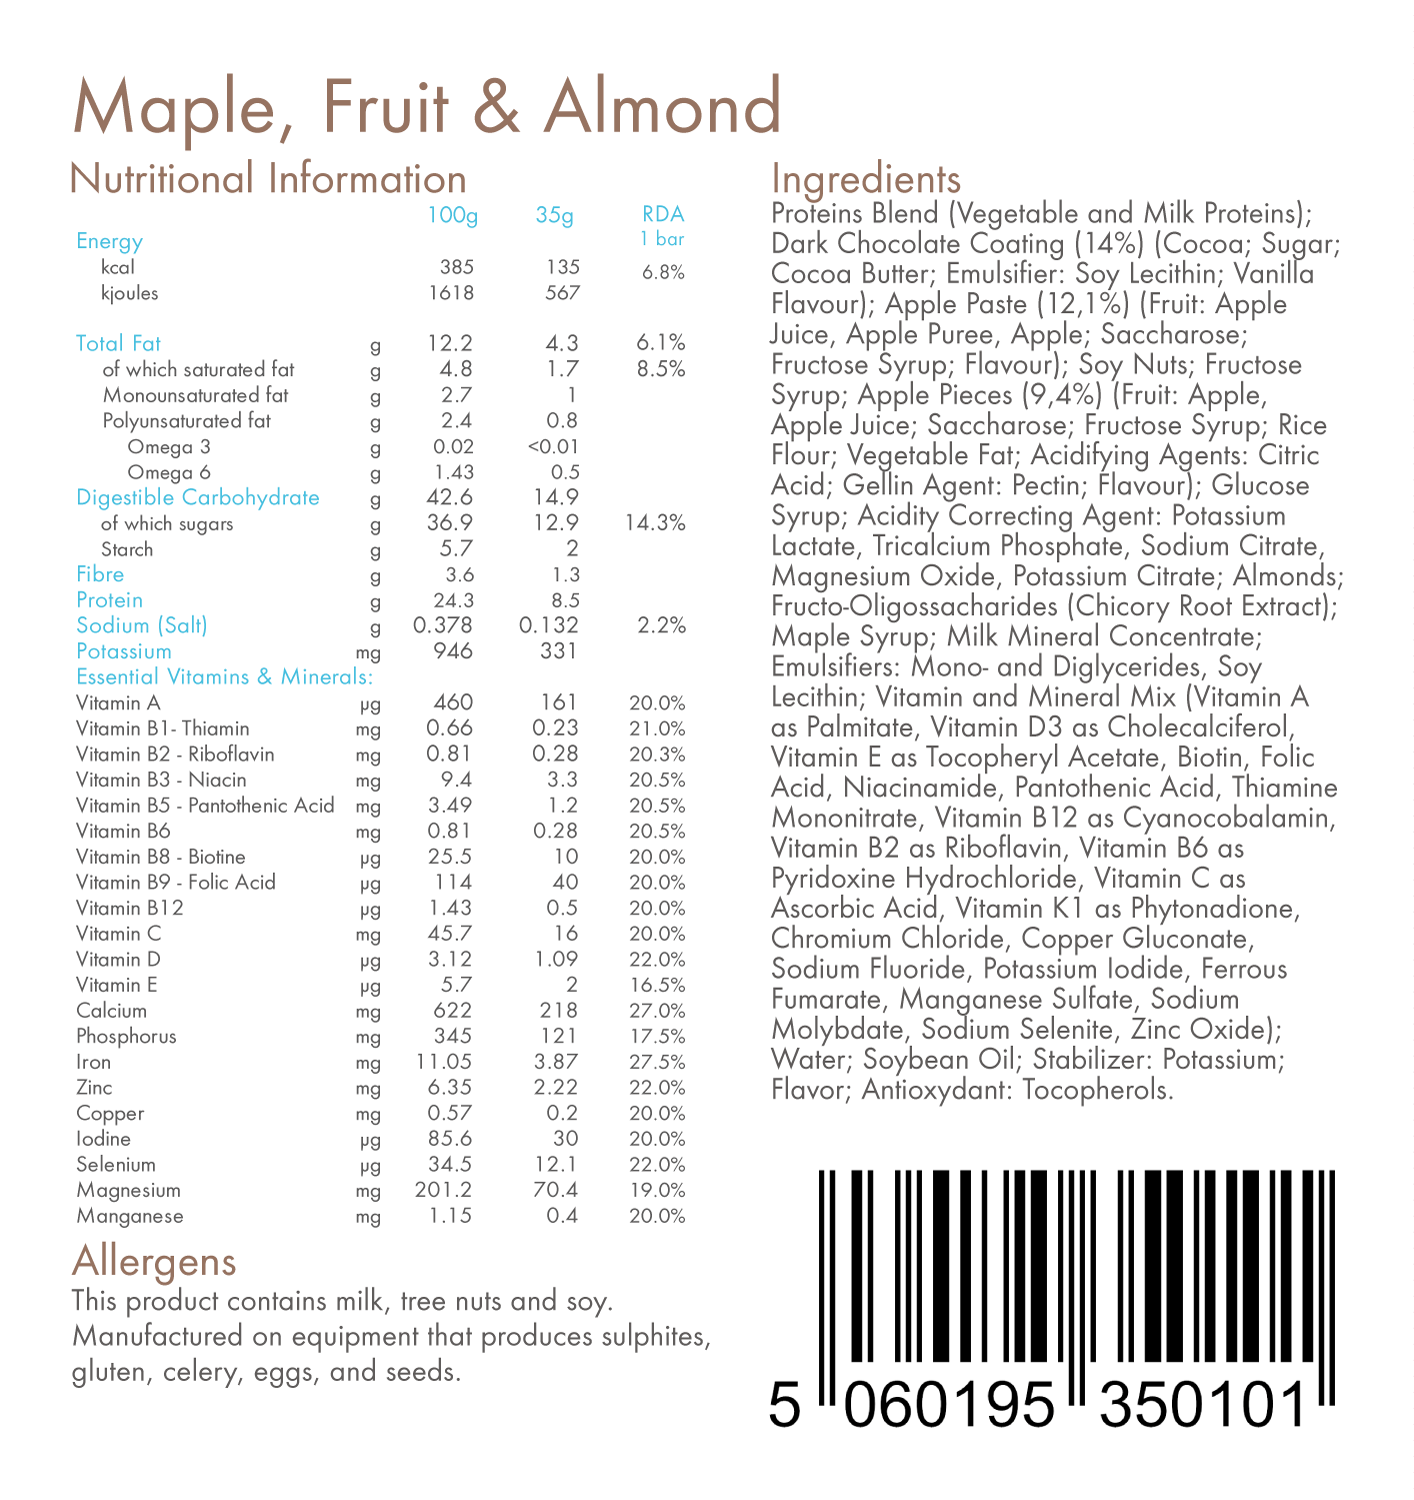 Maple Fruit & Almond 130kcal Total Food Replacement Bars